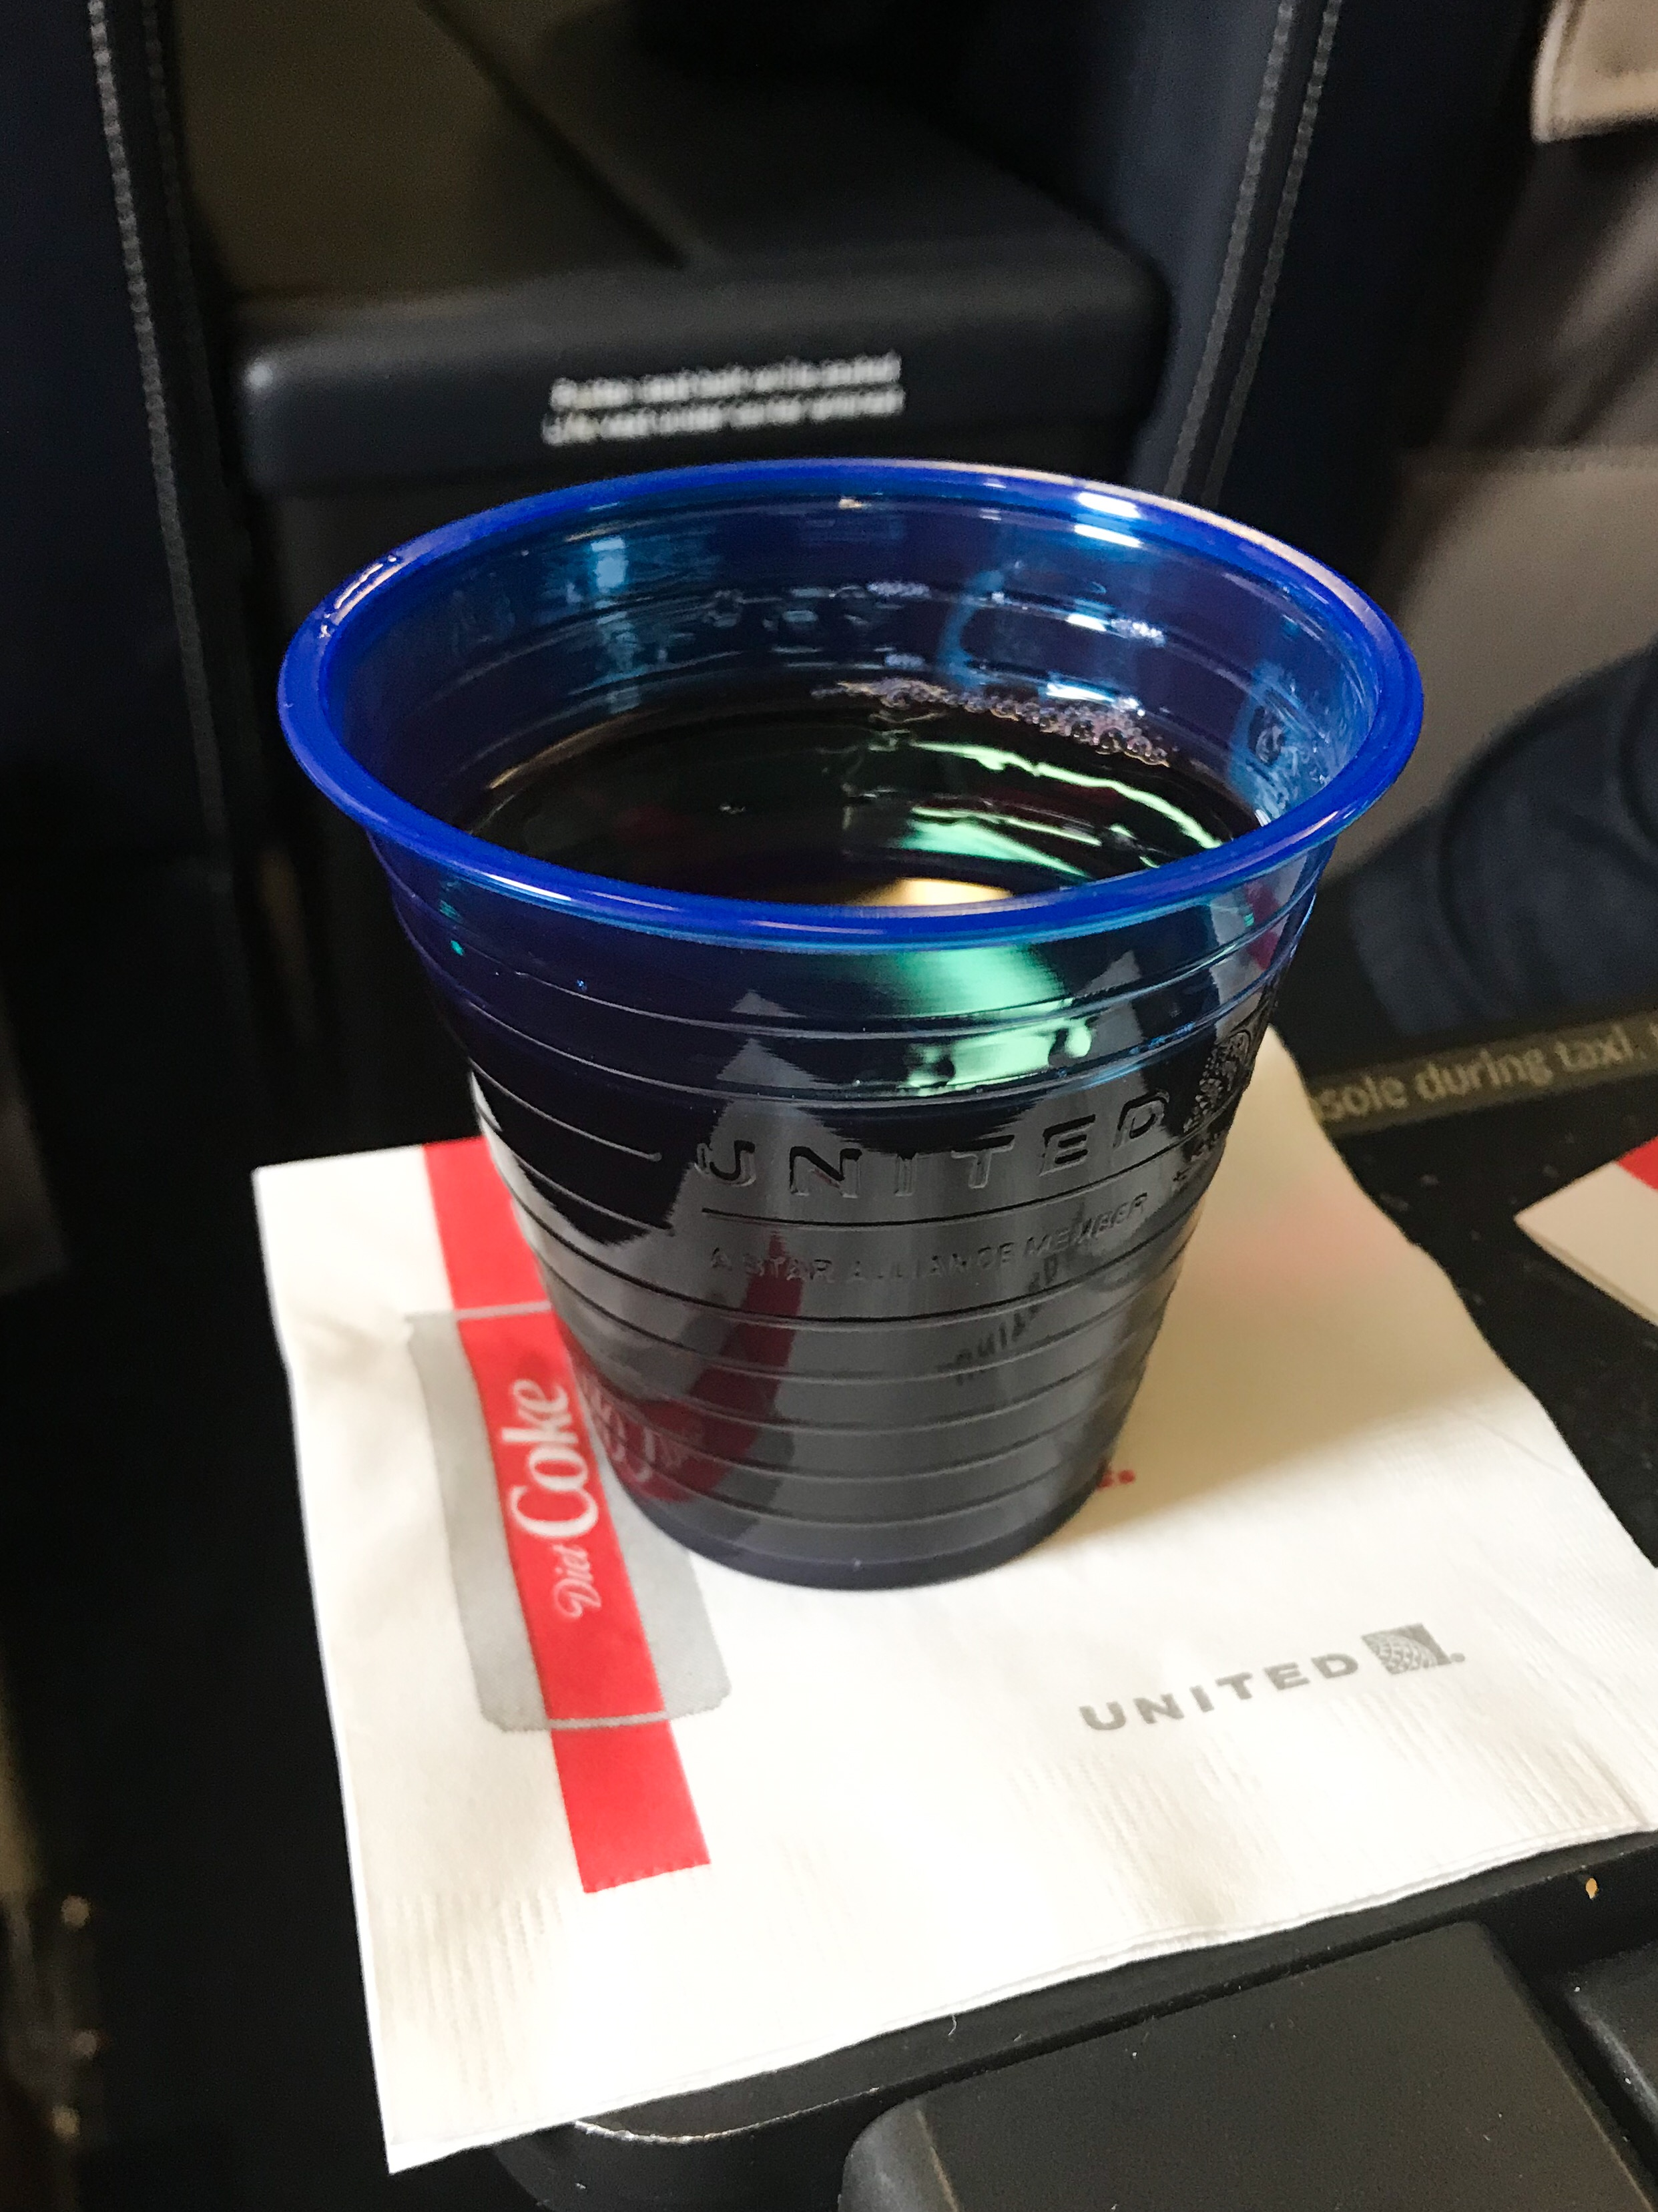 United offers pre-departure beverage service.